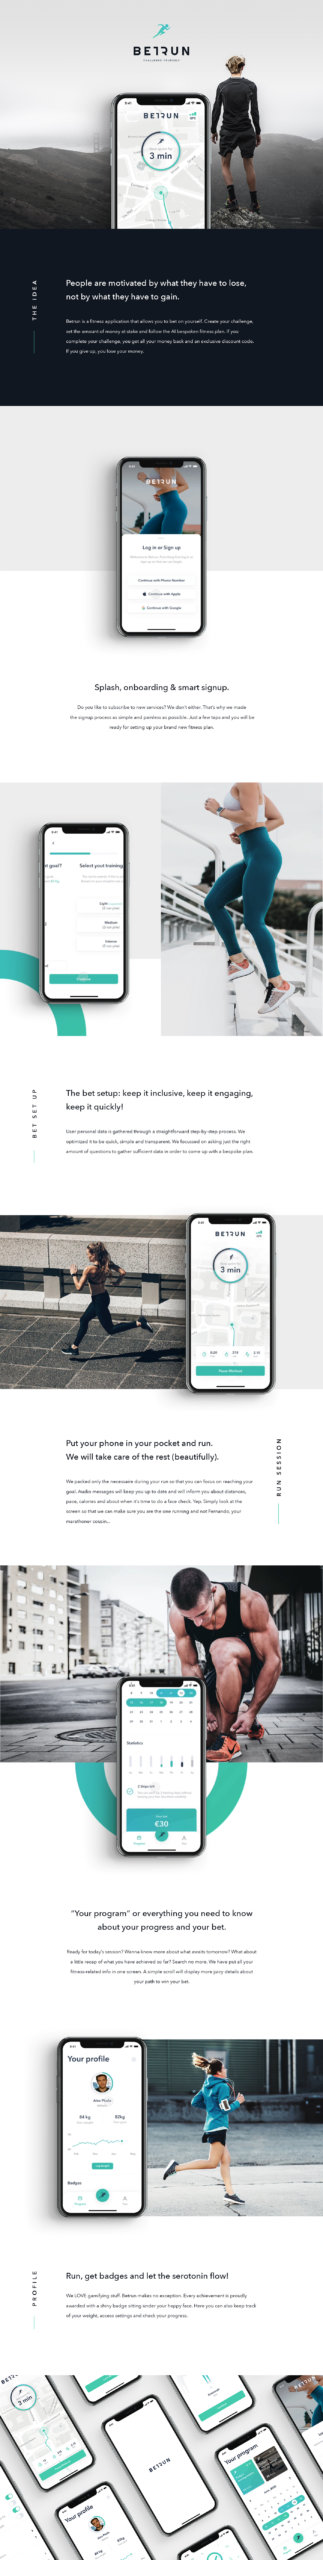 Betrun UI Kit for Sketch from UIGarage